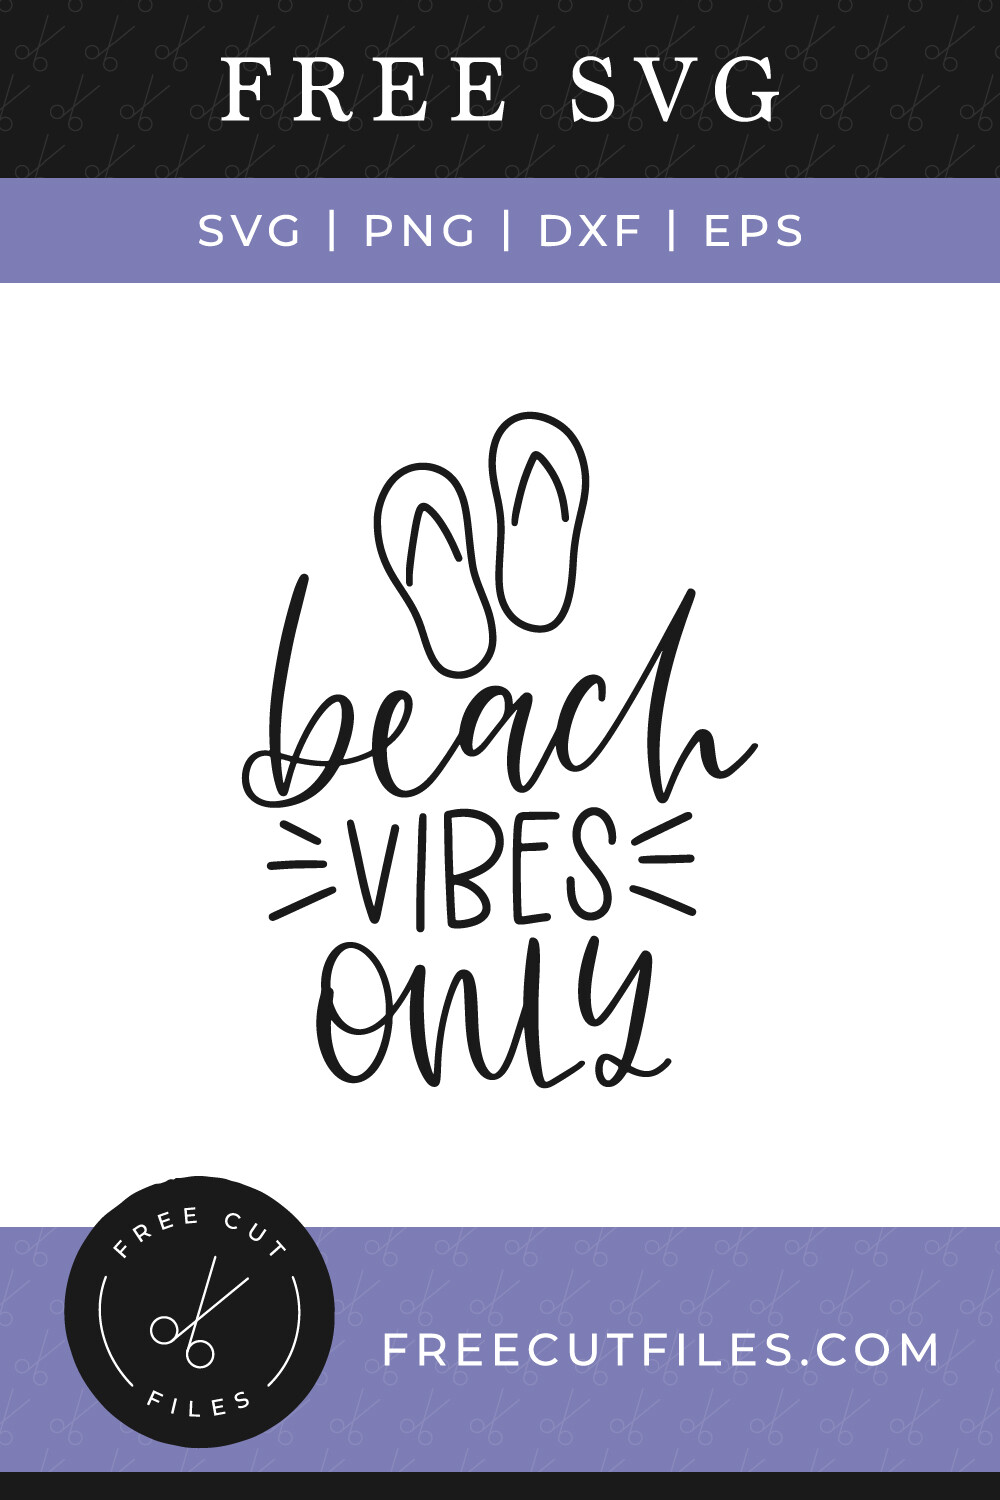 Beach vibes only   Free SVG file